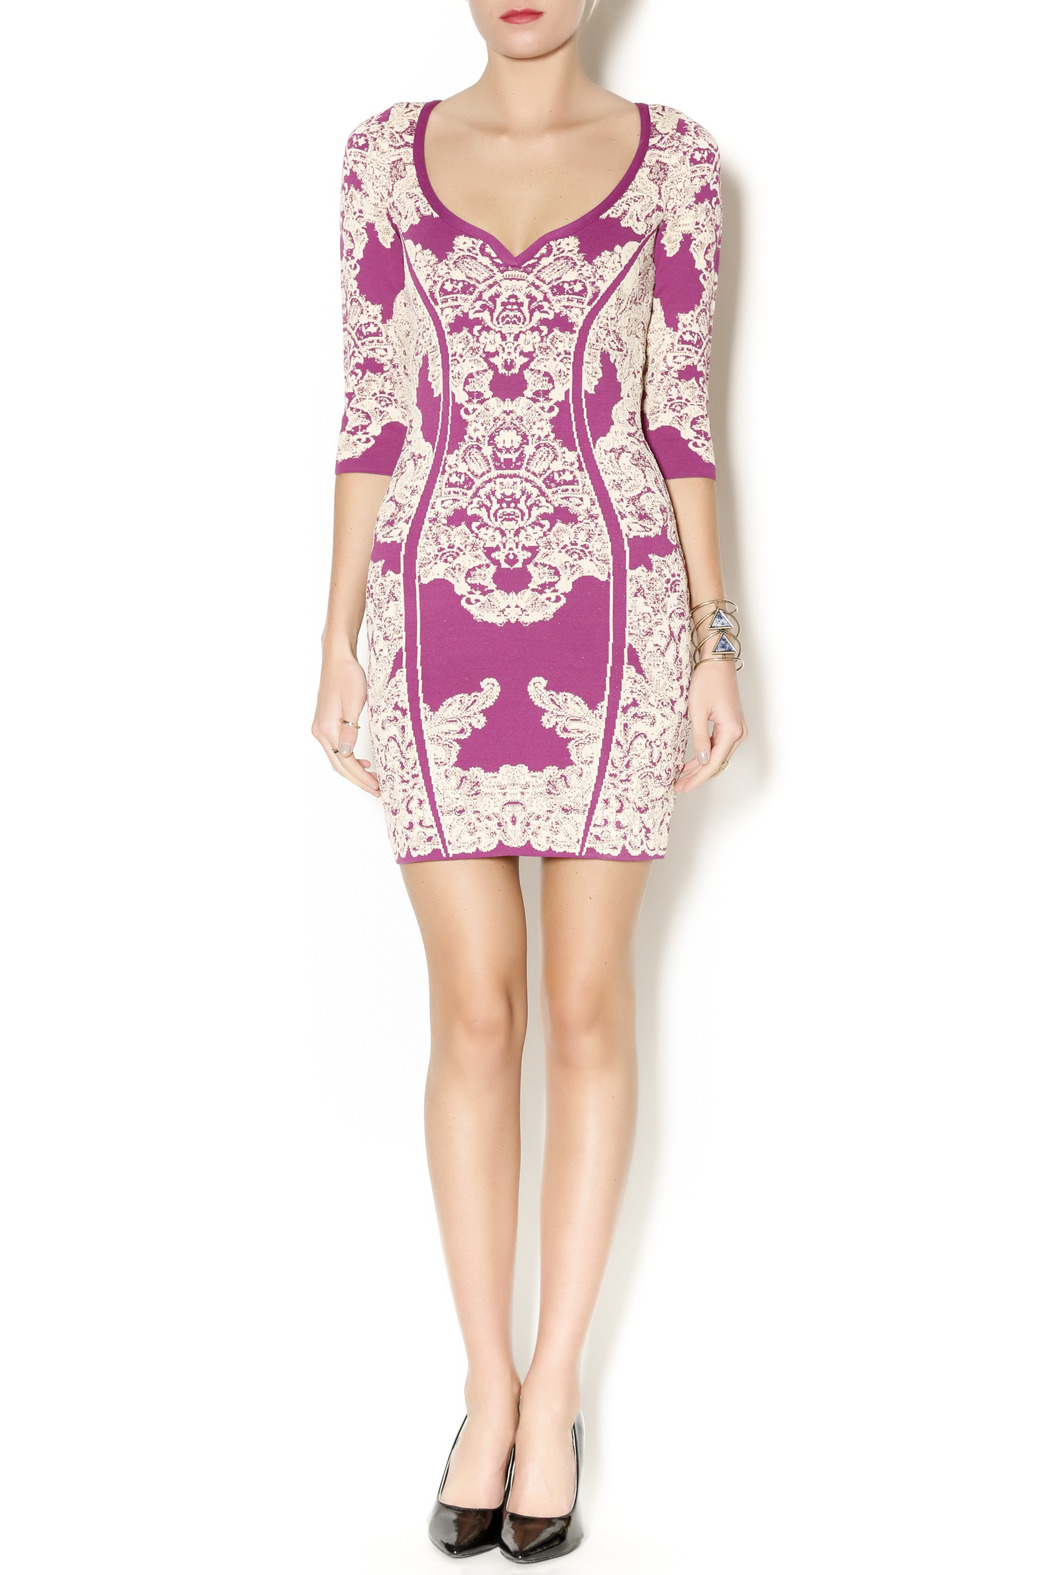 Wow Couture Damask Body Con Dress - Front Full Image